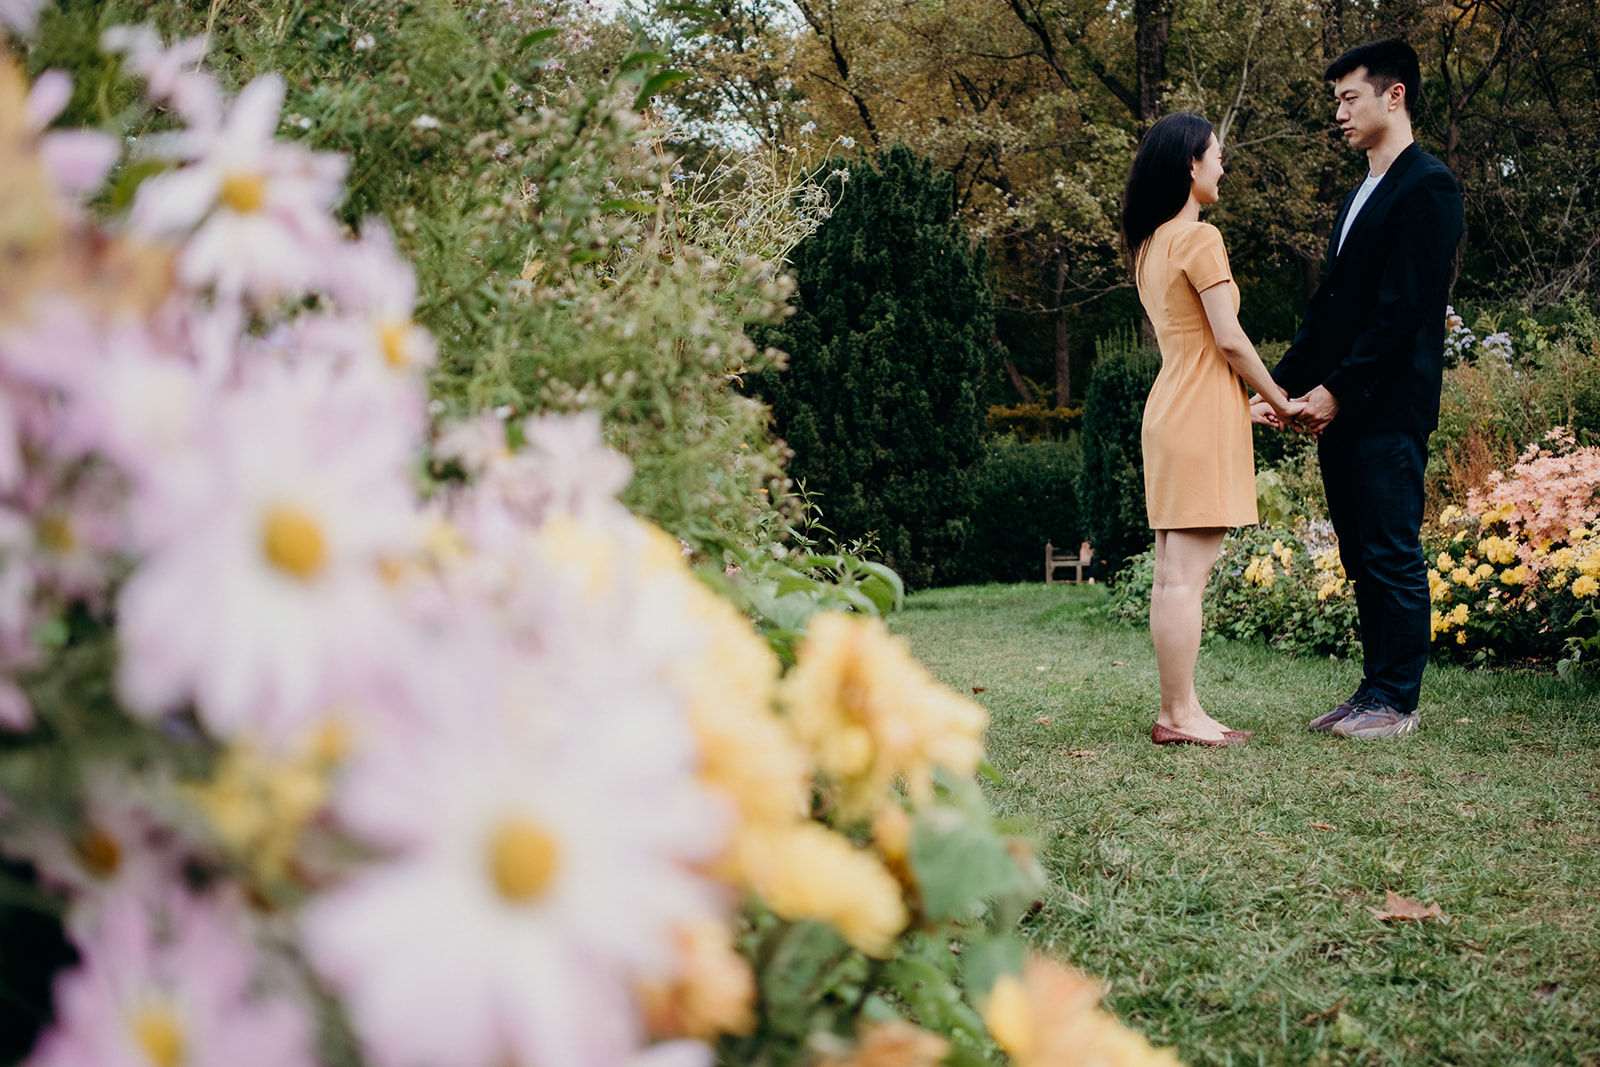 An engaged couple stands together by the daisy garden at Dumbarton Oaks.